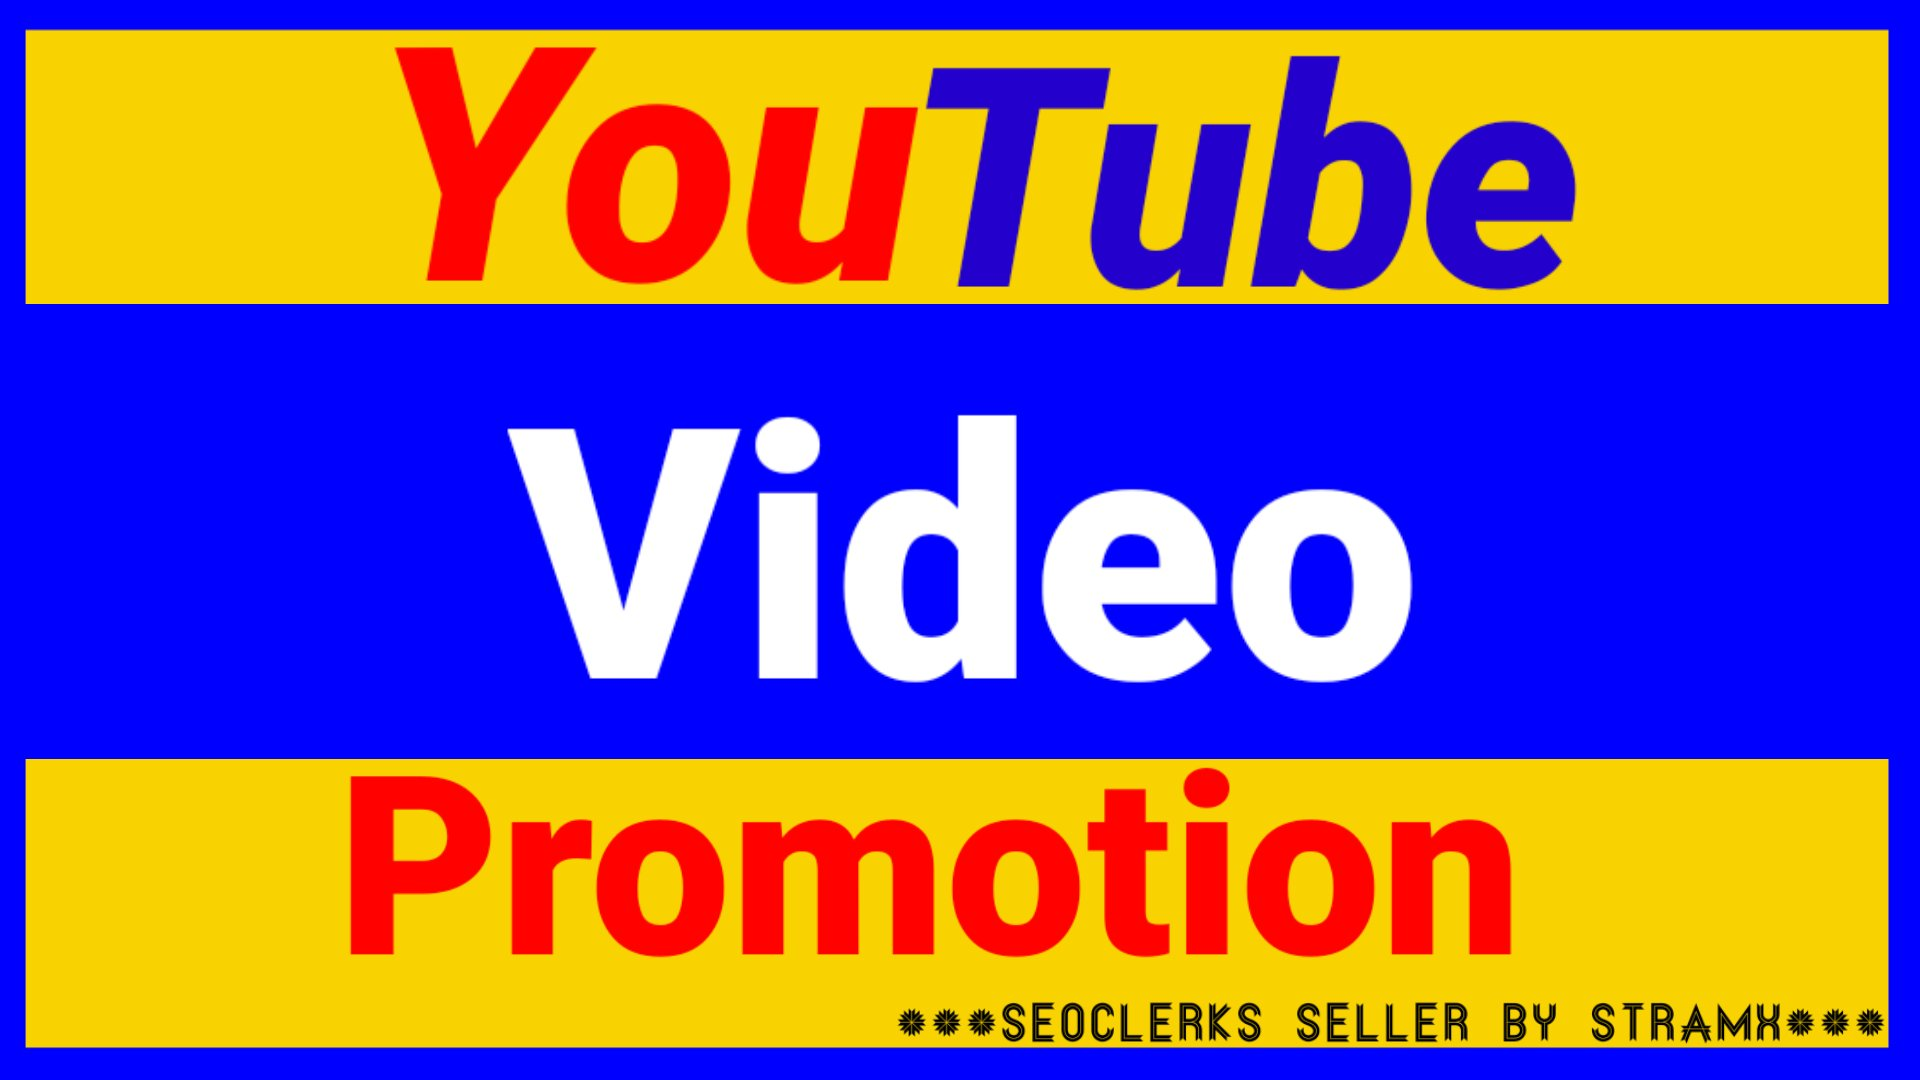 YouTube Video Visitor Worldwide and Real Audiences Safe And Superfast 24 Delivery